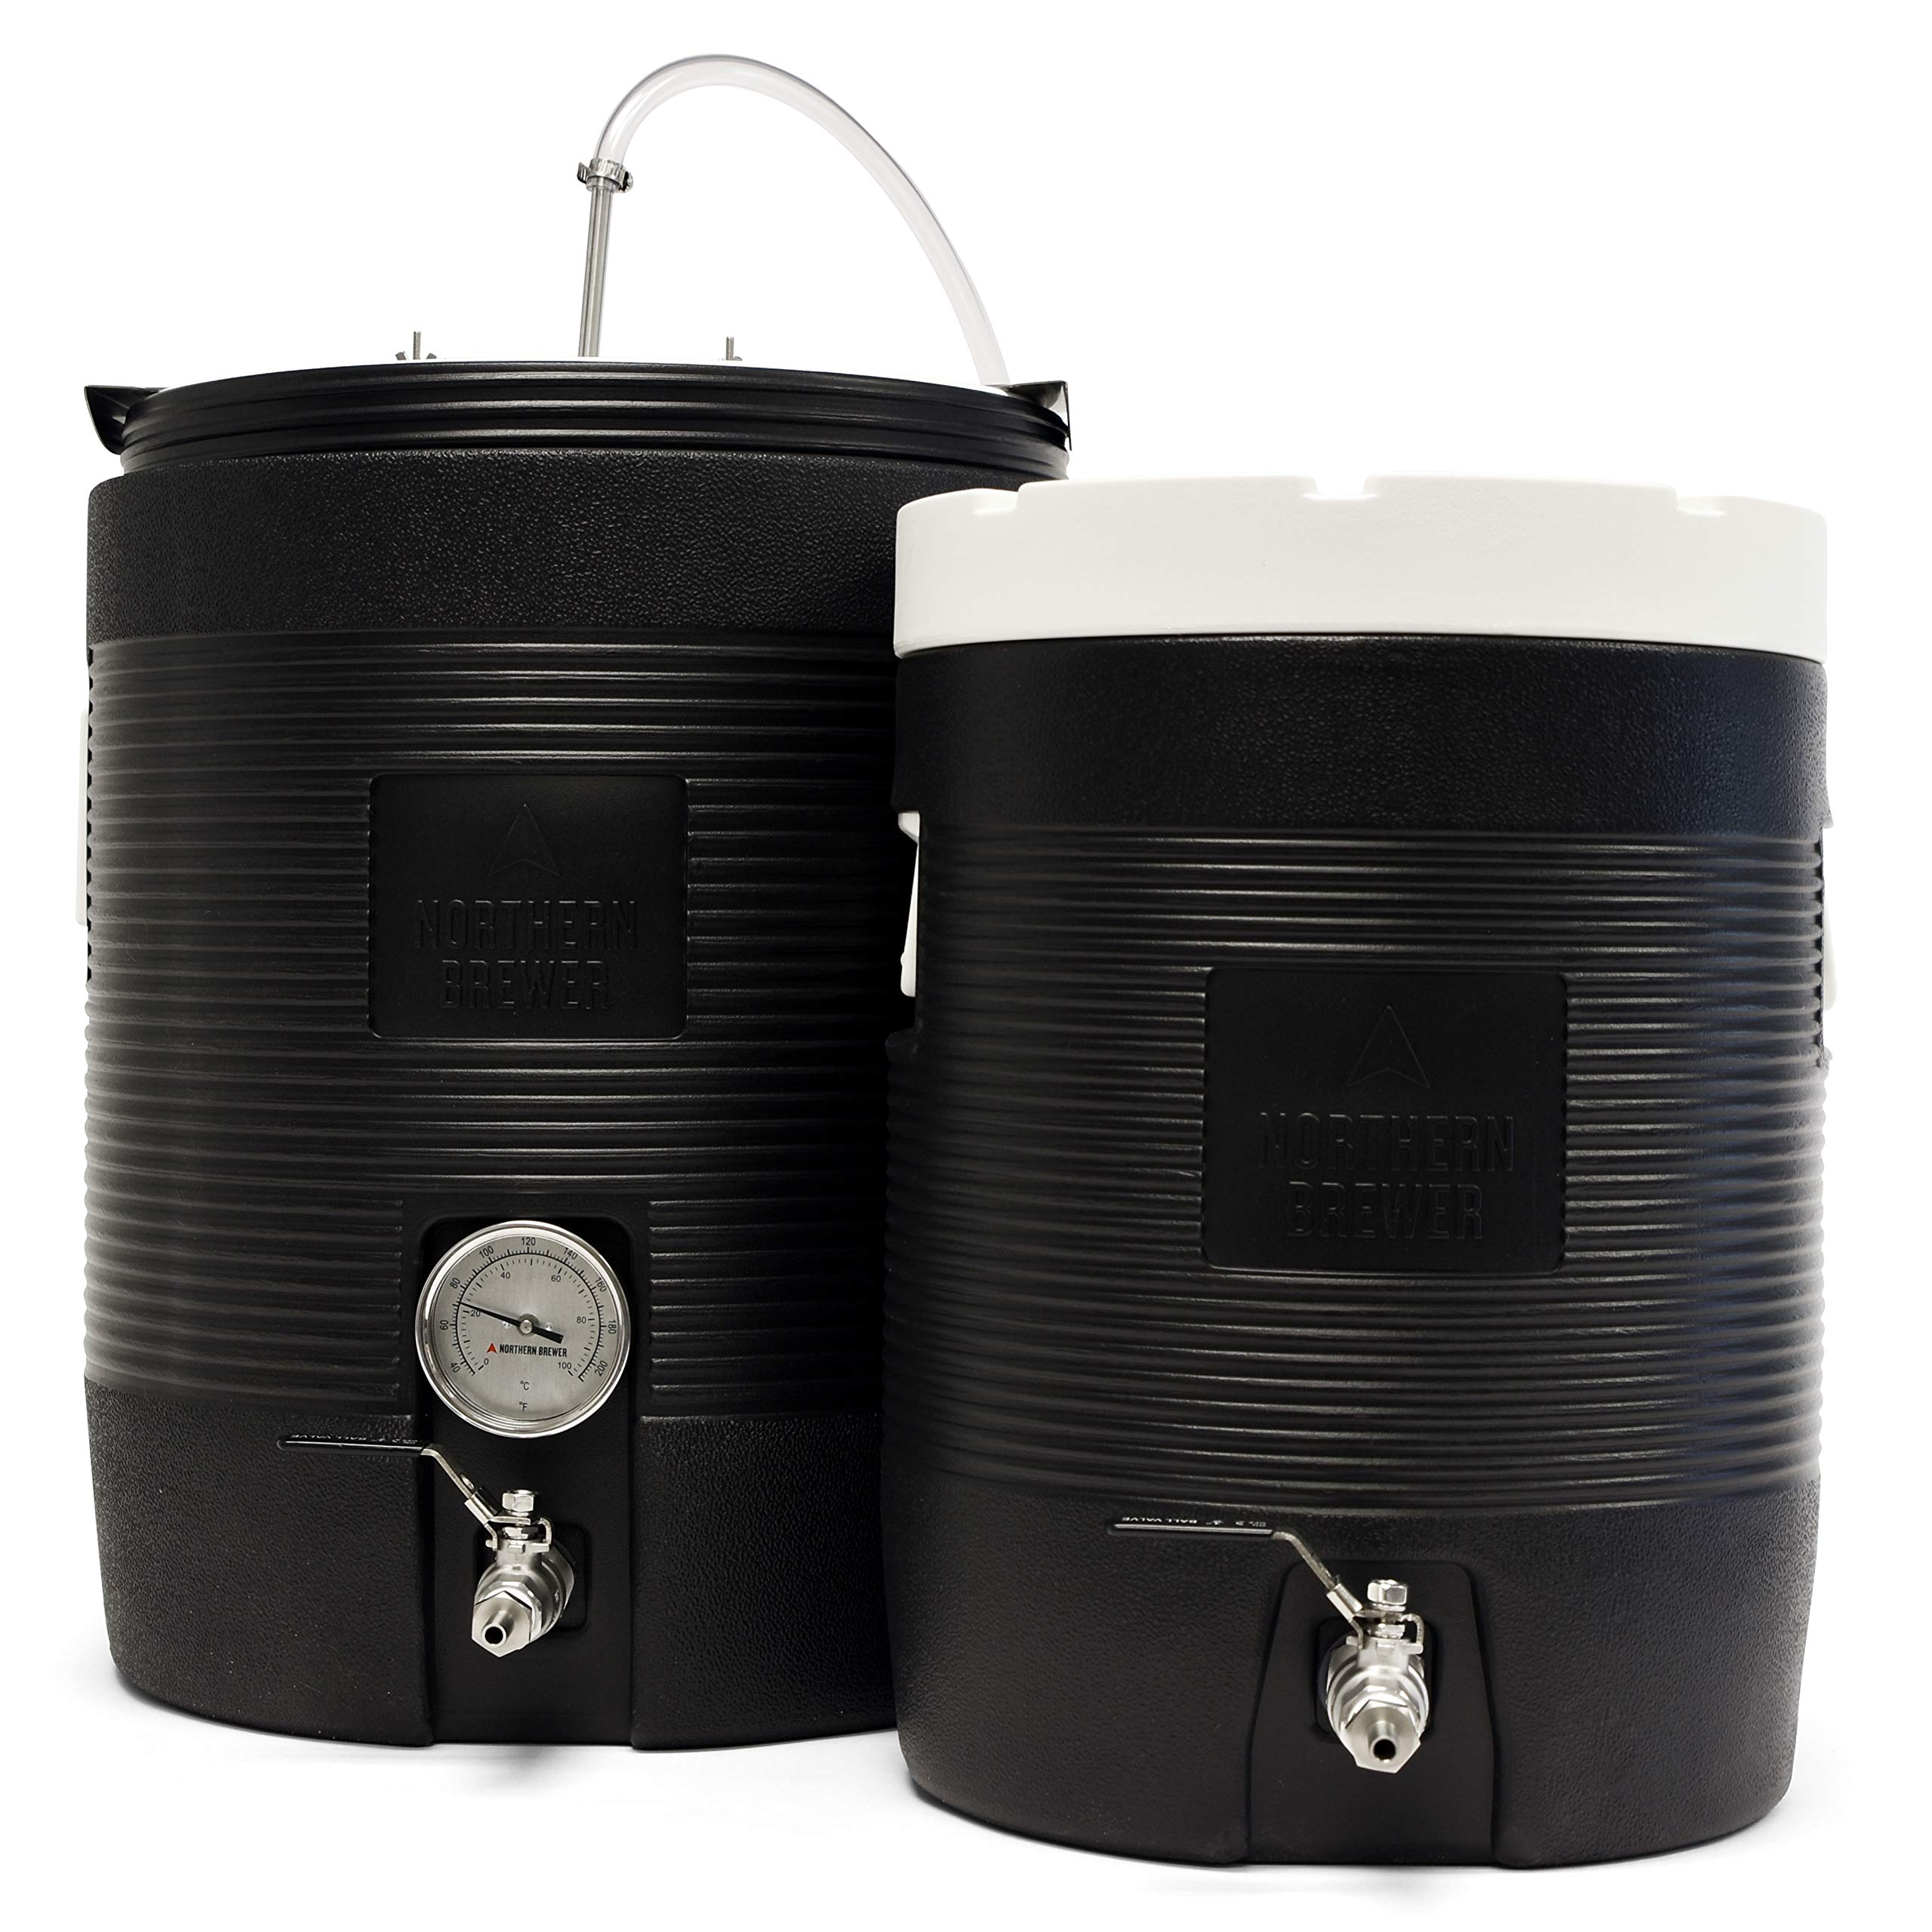 Northern Brewer - Insulated Cooler All Grain Starter Kit Including 12 Gallon Mash Tun with Thermometer, Nested Hot Liquor Tank, Sparge Arm, Tubing, Titan False Bottom, All Stainless Steel Fittings